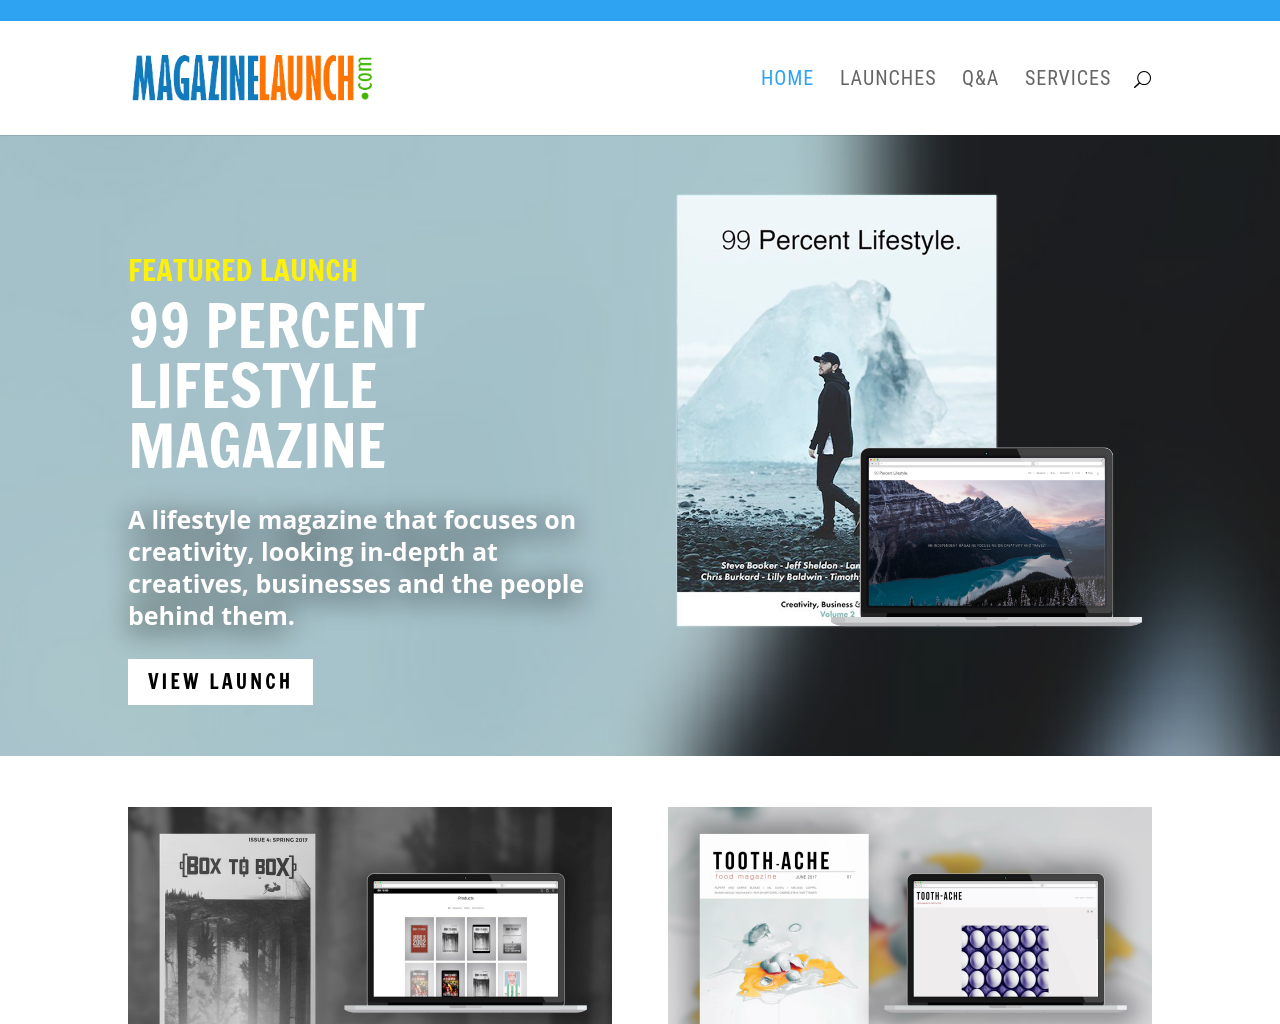 Magazine-Launch-Advertising-Reviews-Pricing